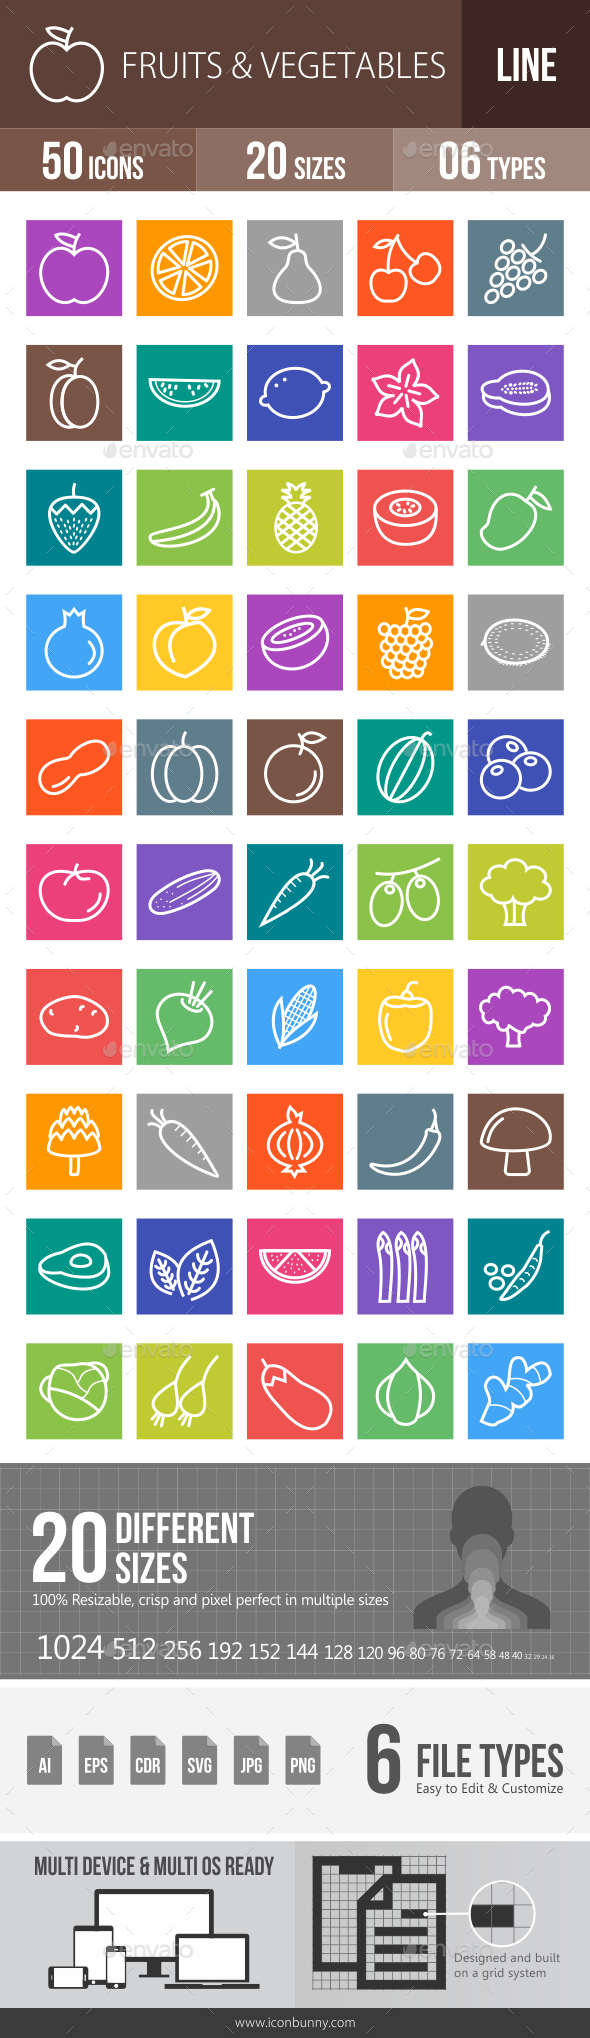 Fruits & Vegetables Line Multicolor Icons - Icons